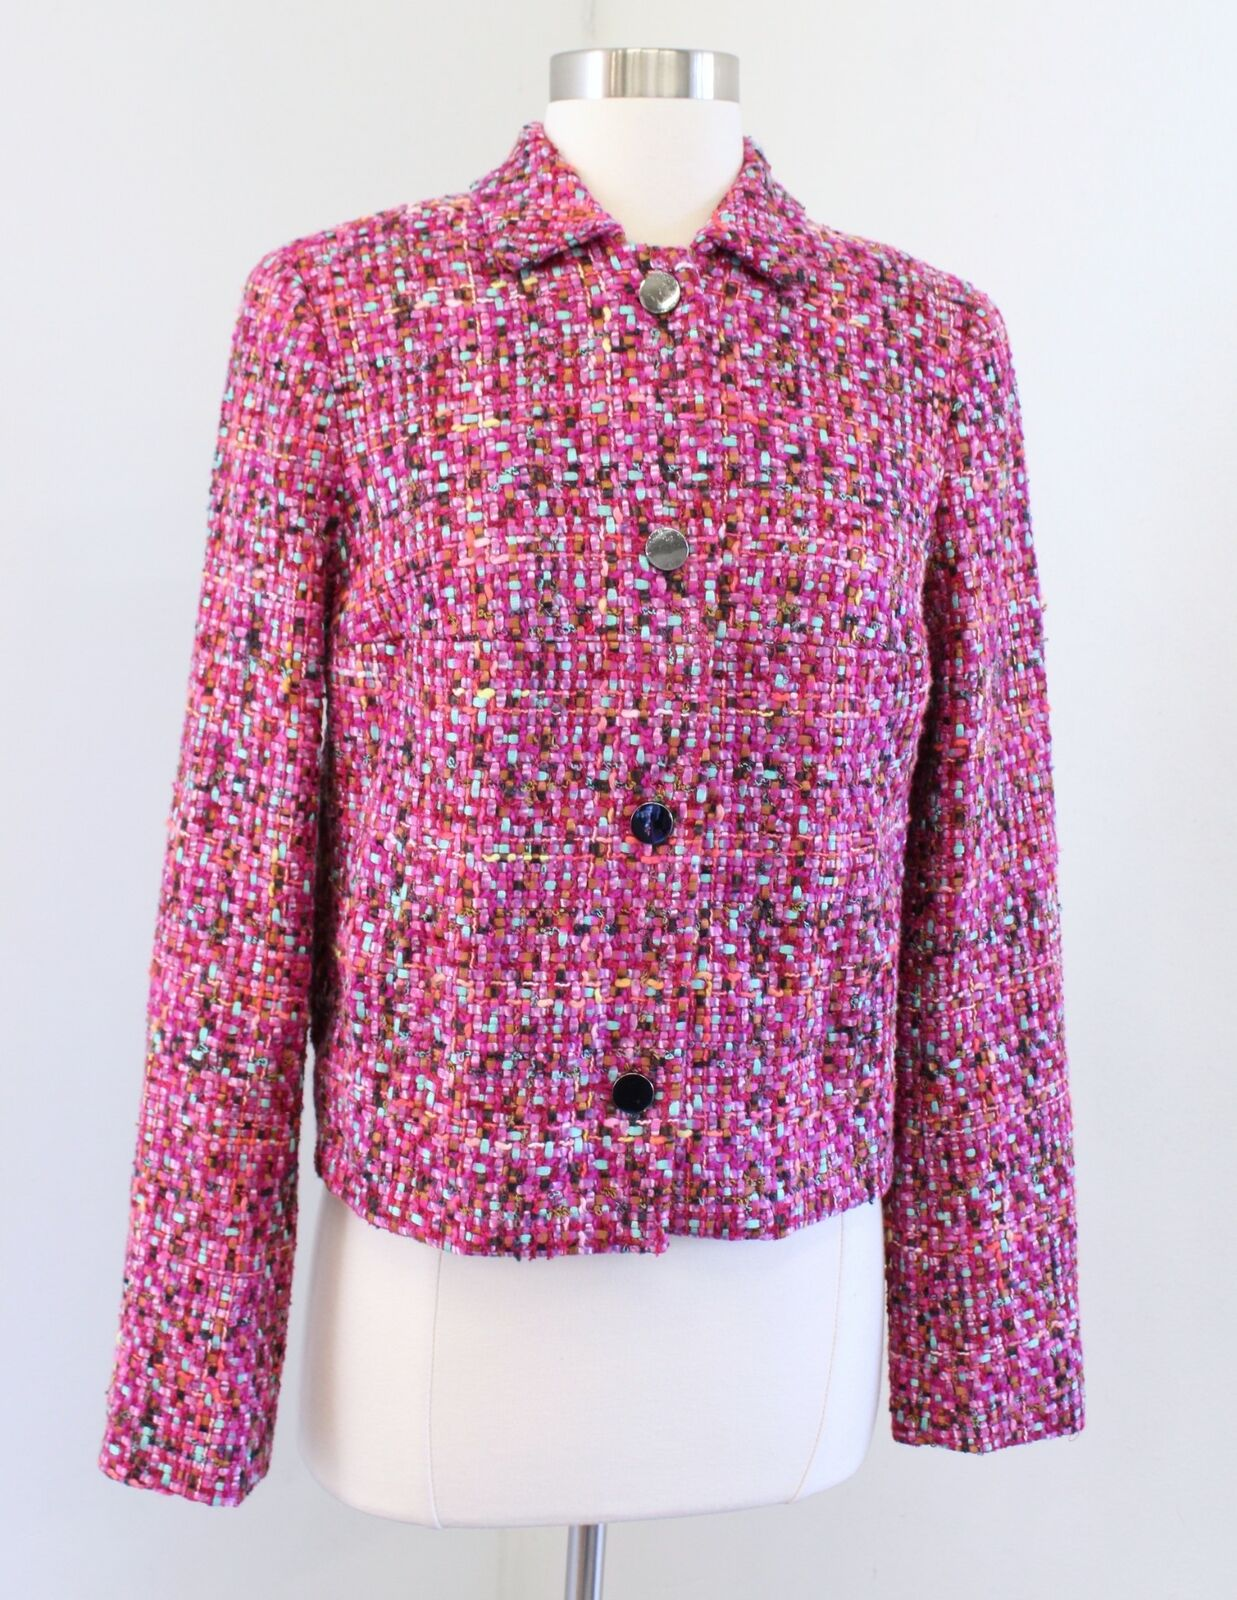 Carlisle Collection Pink Multi Color Woven Tweed Pleated Blazer Jacket Size 2